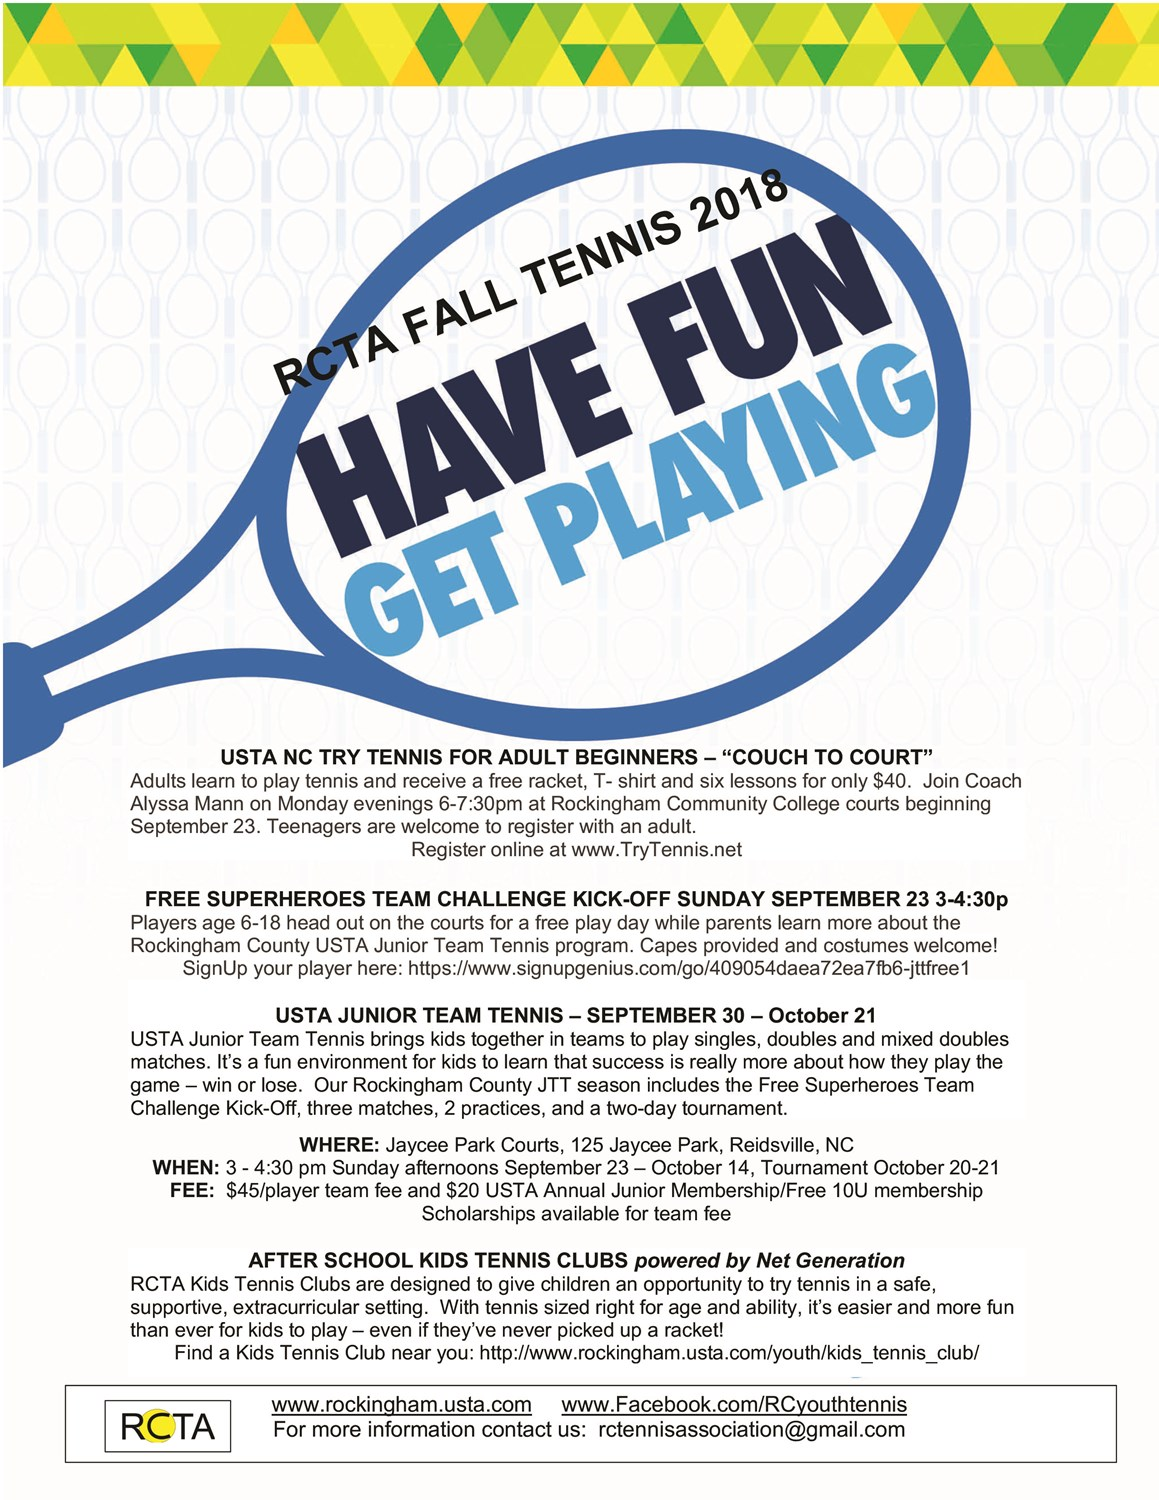 RC_Tennis_FALL_2018_Program_flyer-page-0